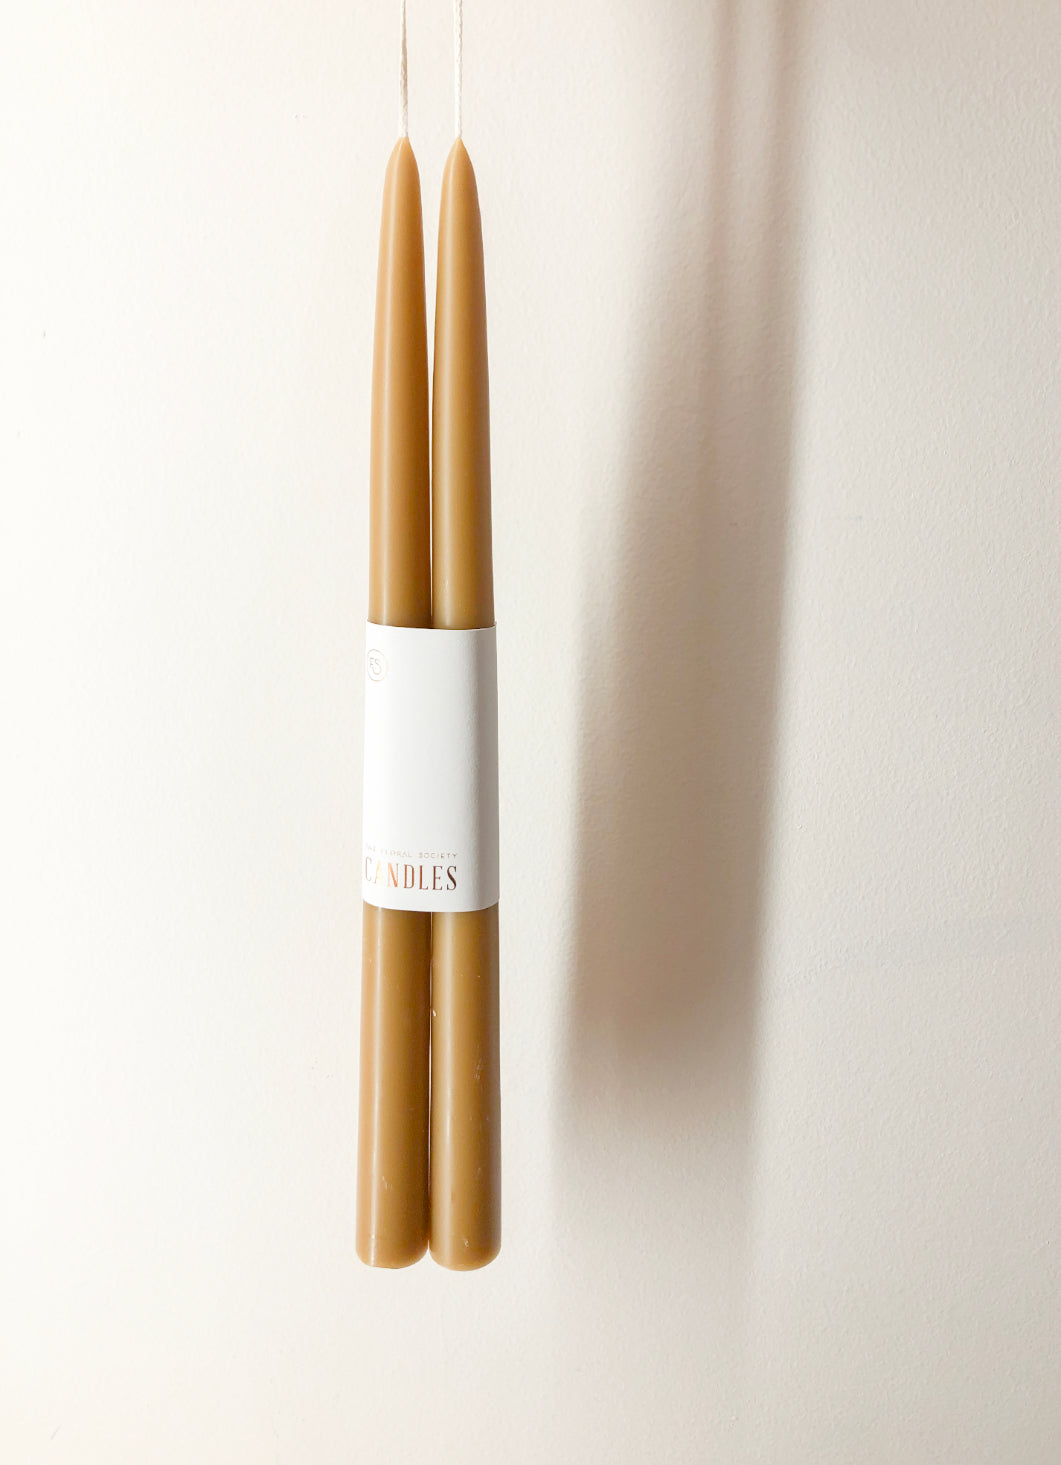 "MIEL 12"" TAPER CANDLE"